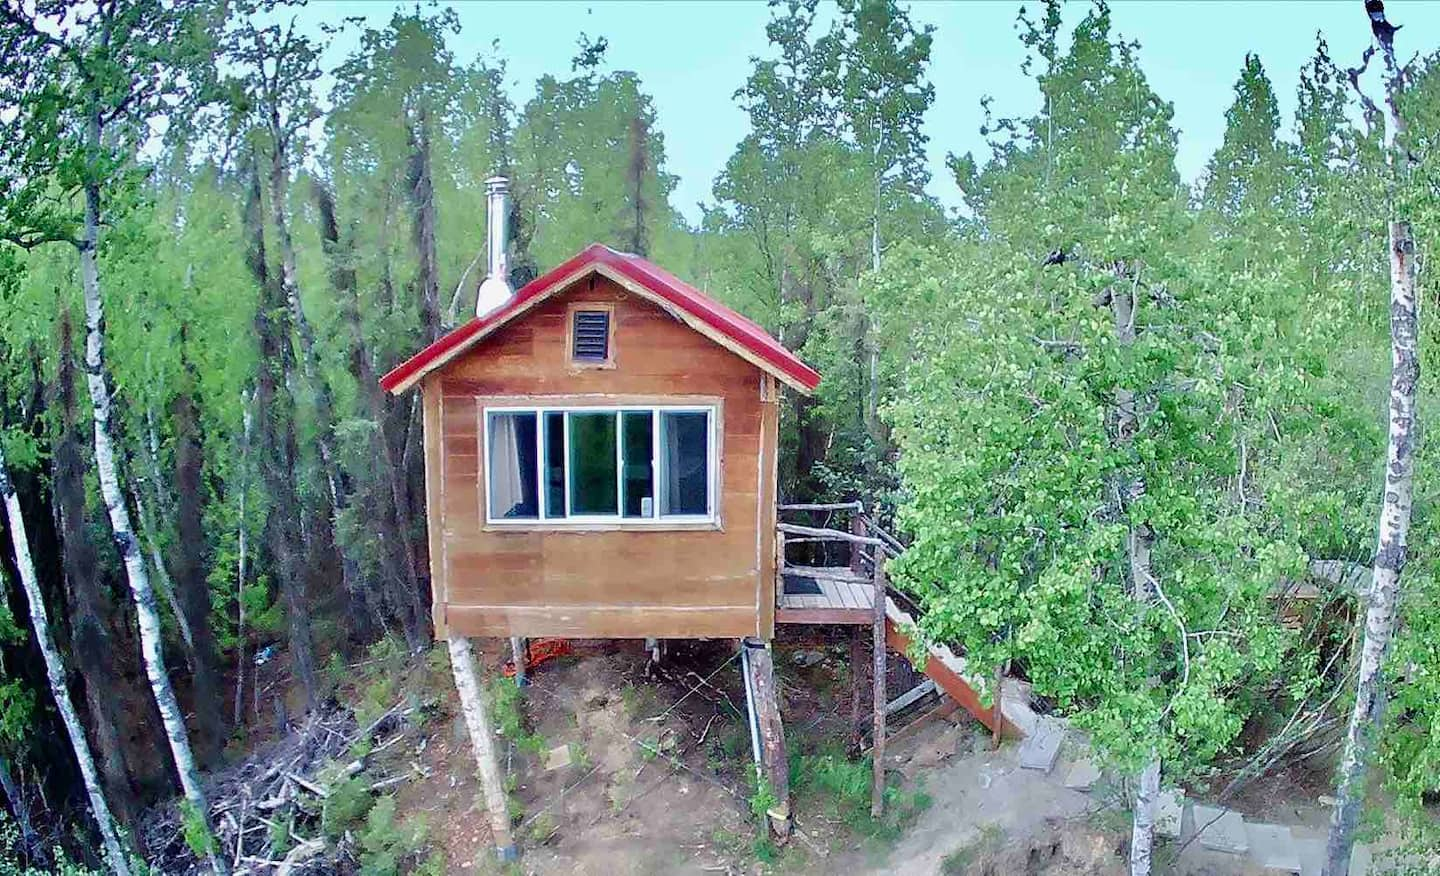 Alaskan Treehouse Experience! Glamping with a view Airbnb